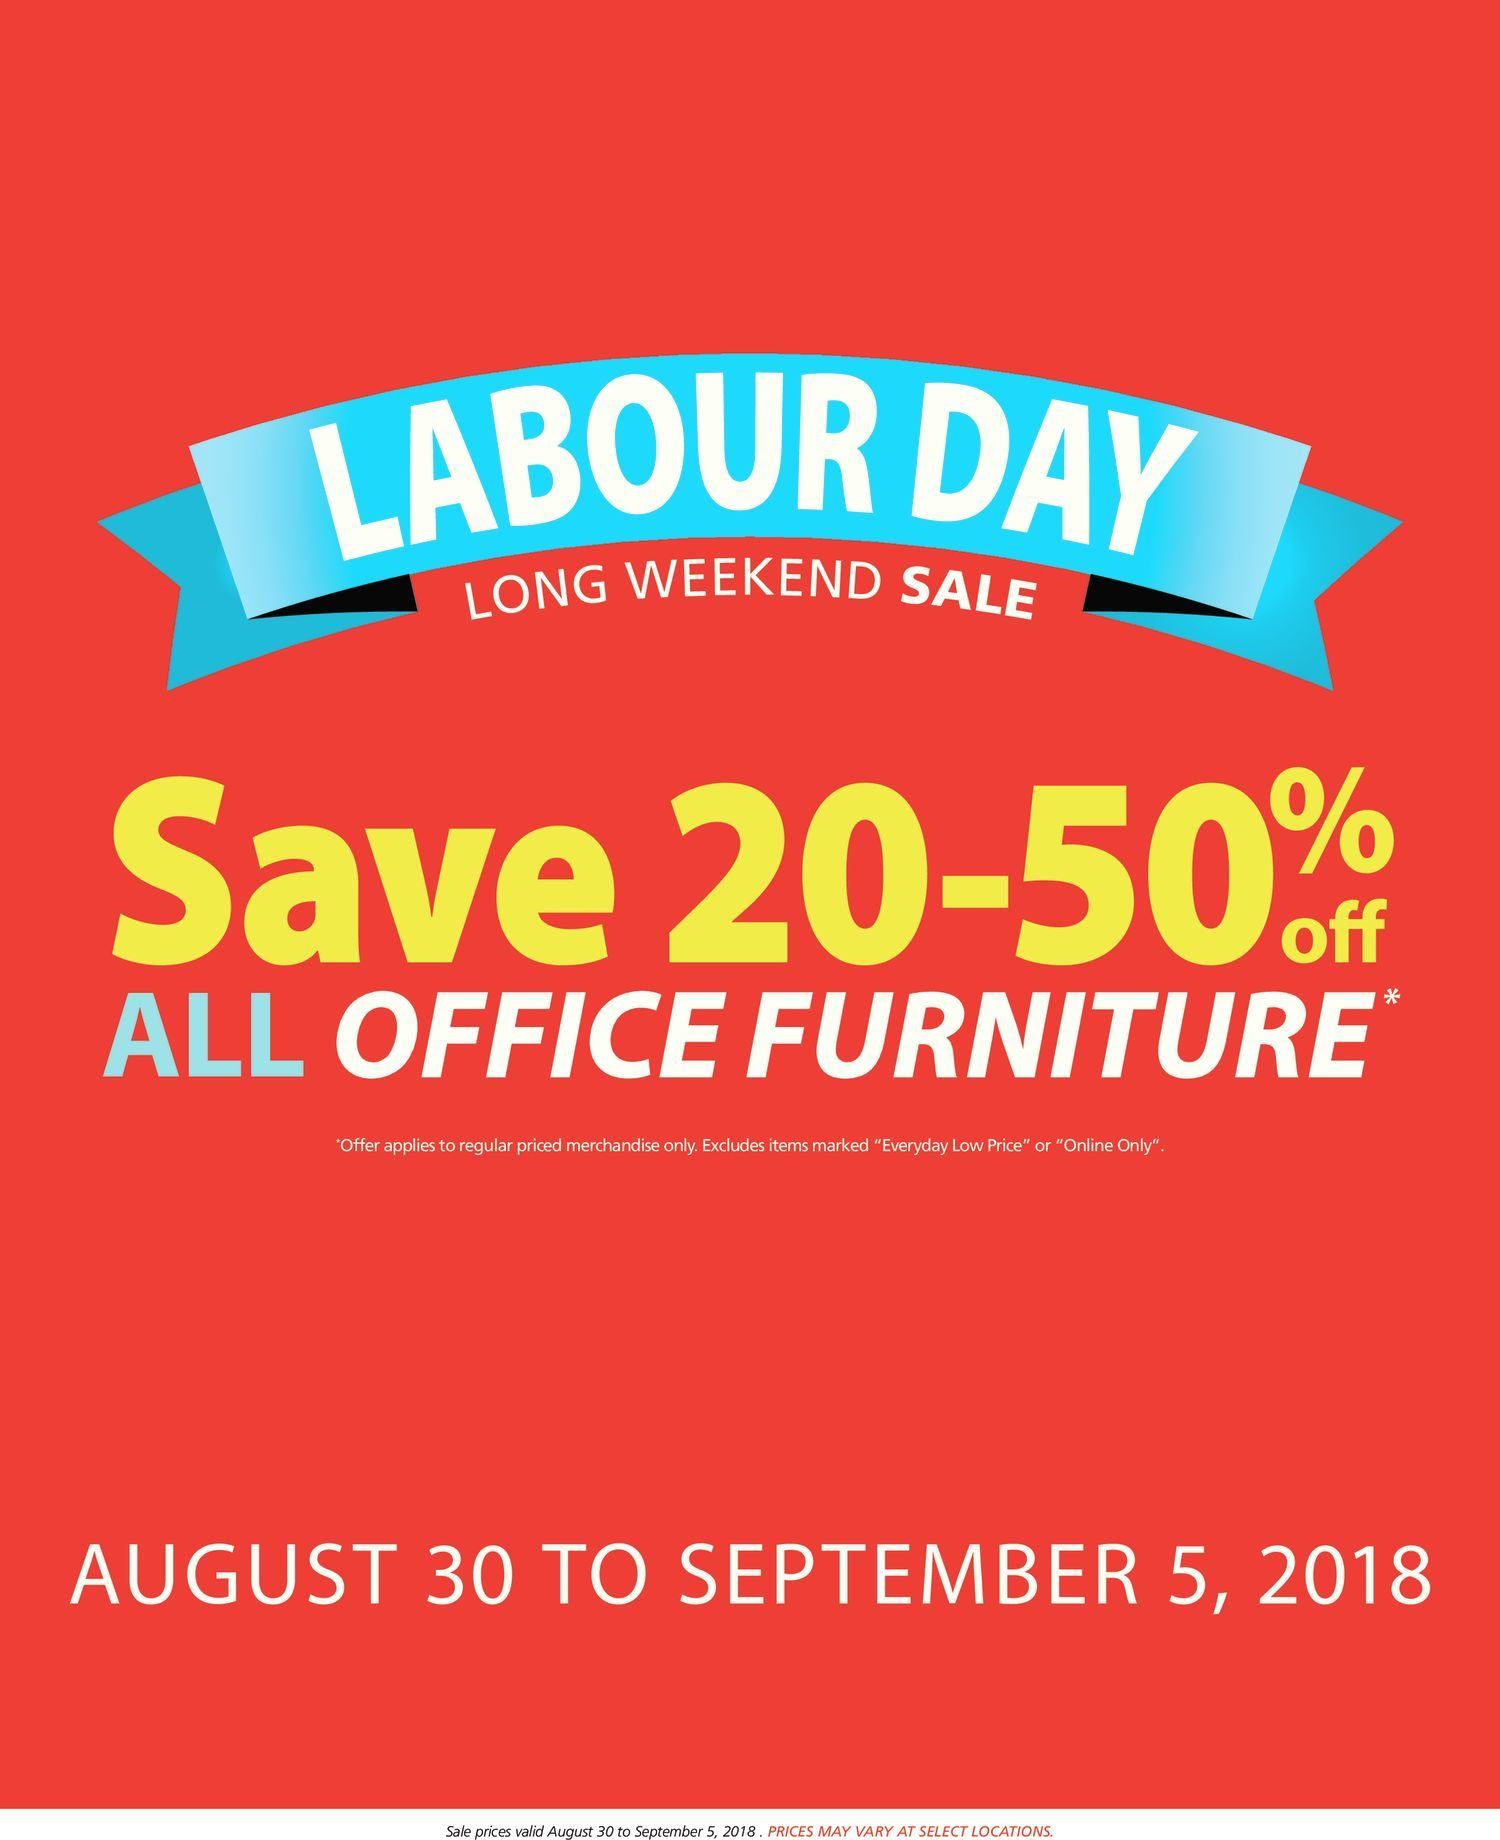 Jysk Weekly Flyer Weekly Labour Day Long Weekend Sale Aug 30